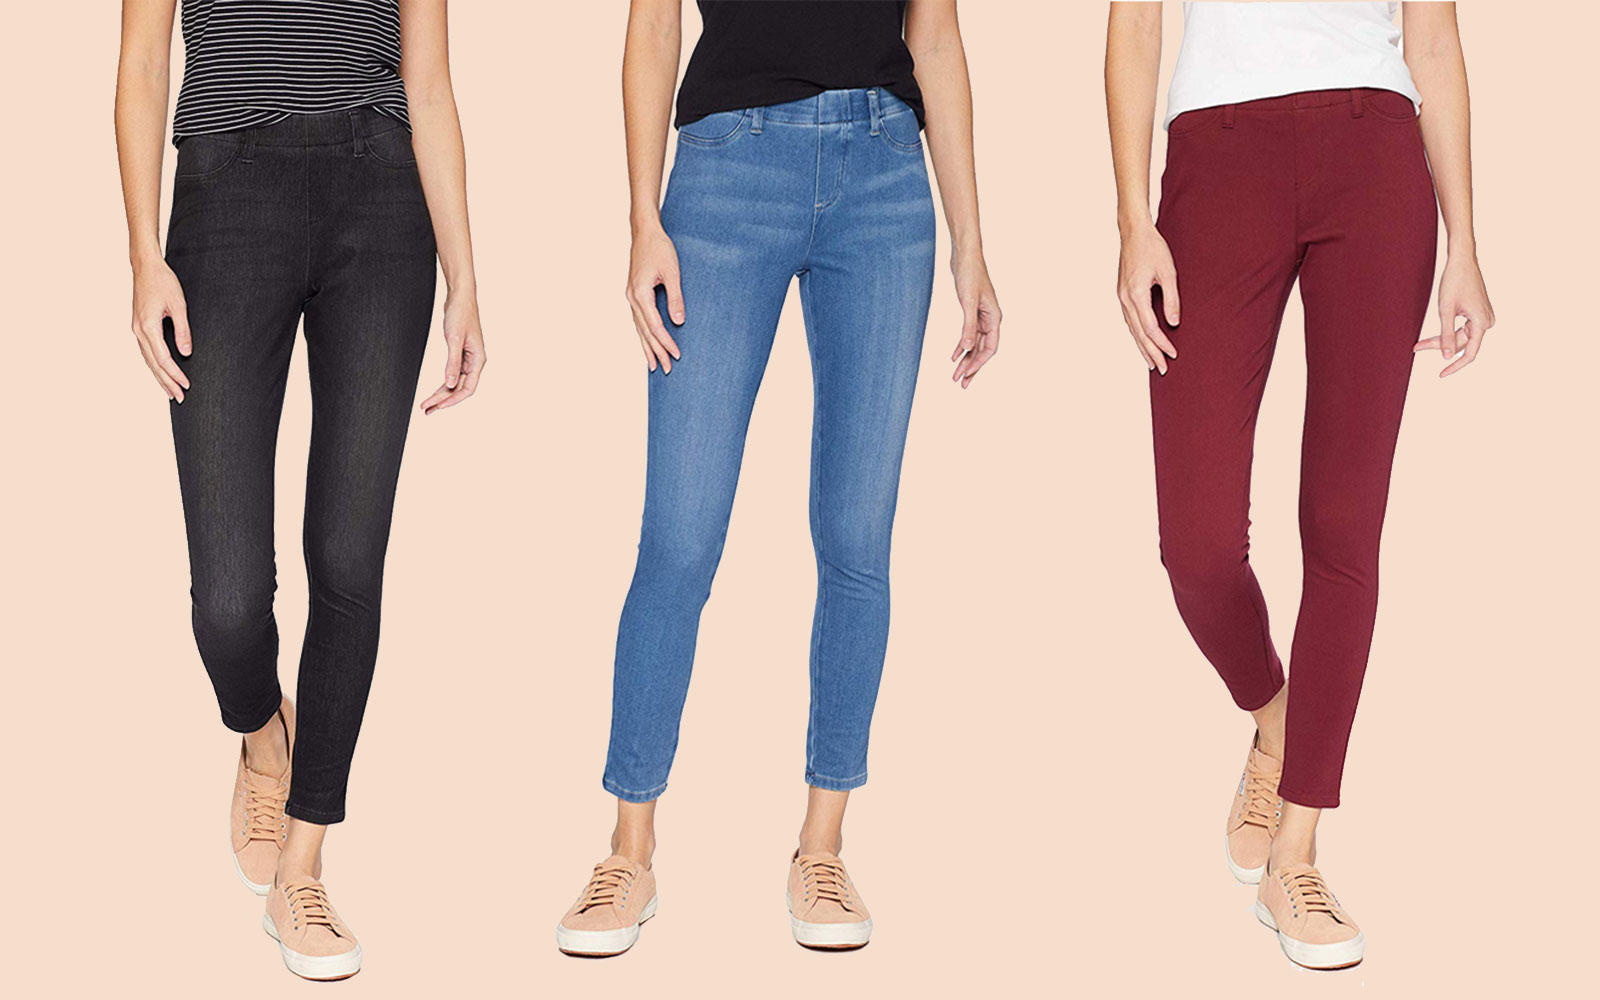 These Super Comfy, $20 Amazon Jeggings Just Spiked in Sales by Over 3 Million Percent